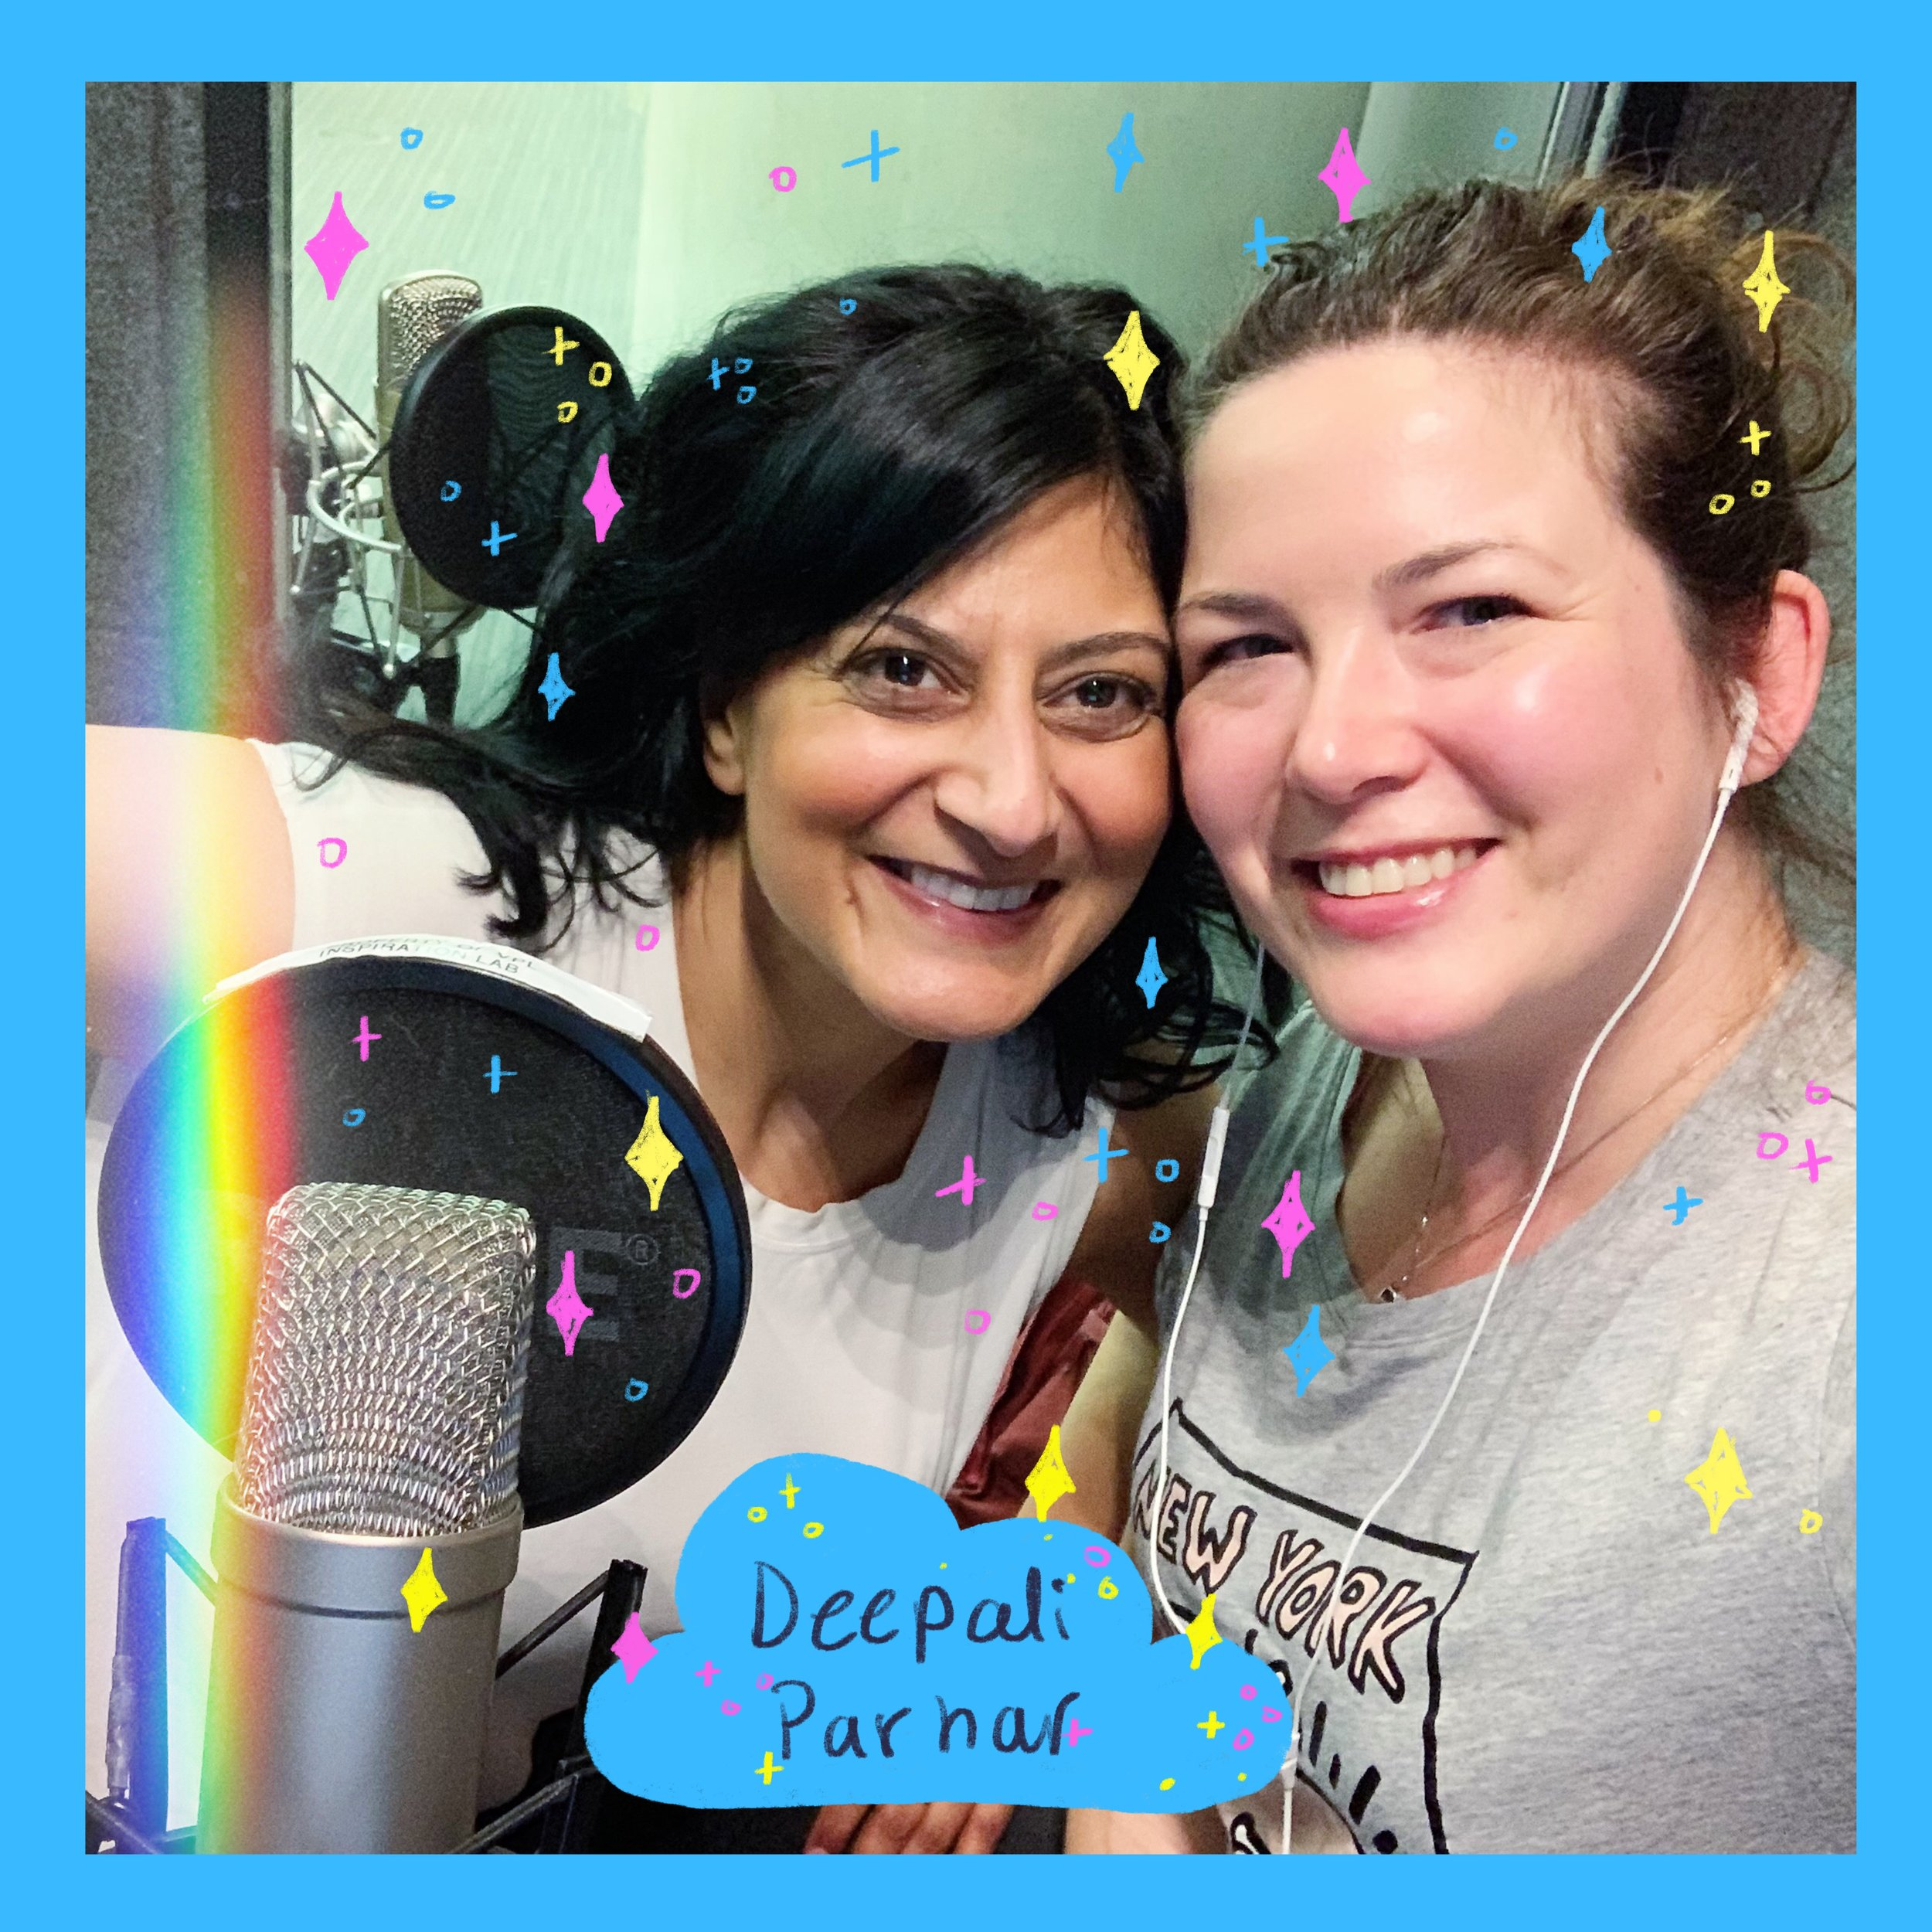 Deepali bringing her sparkling voice and personality to my first official podcast episode recording!